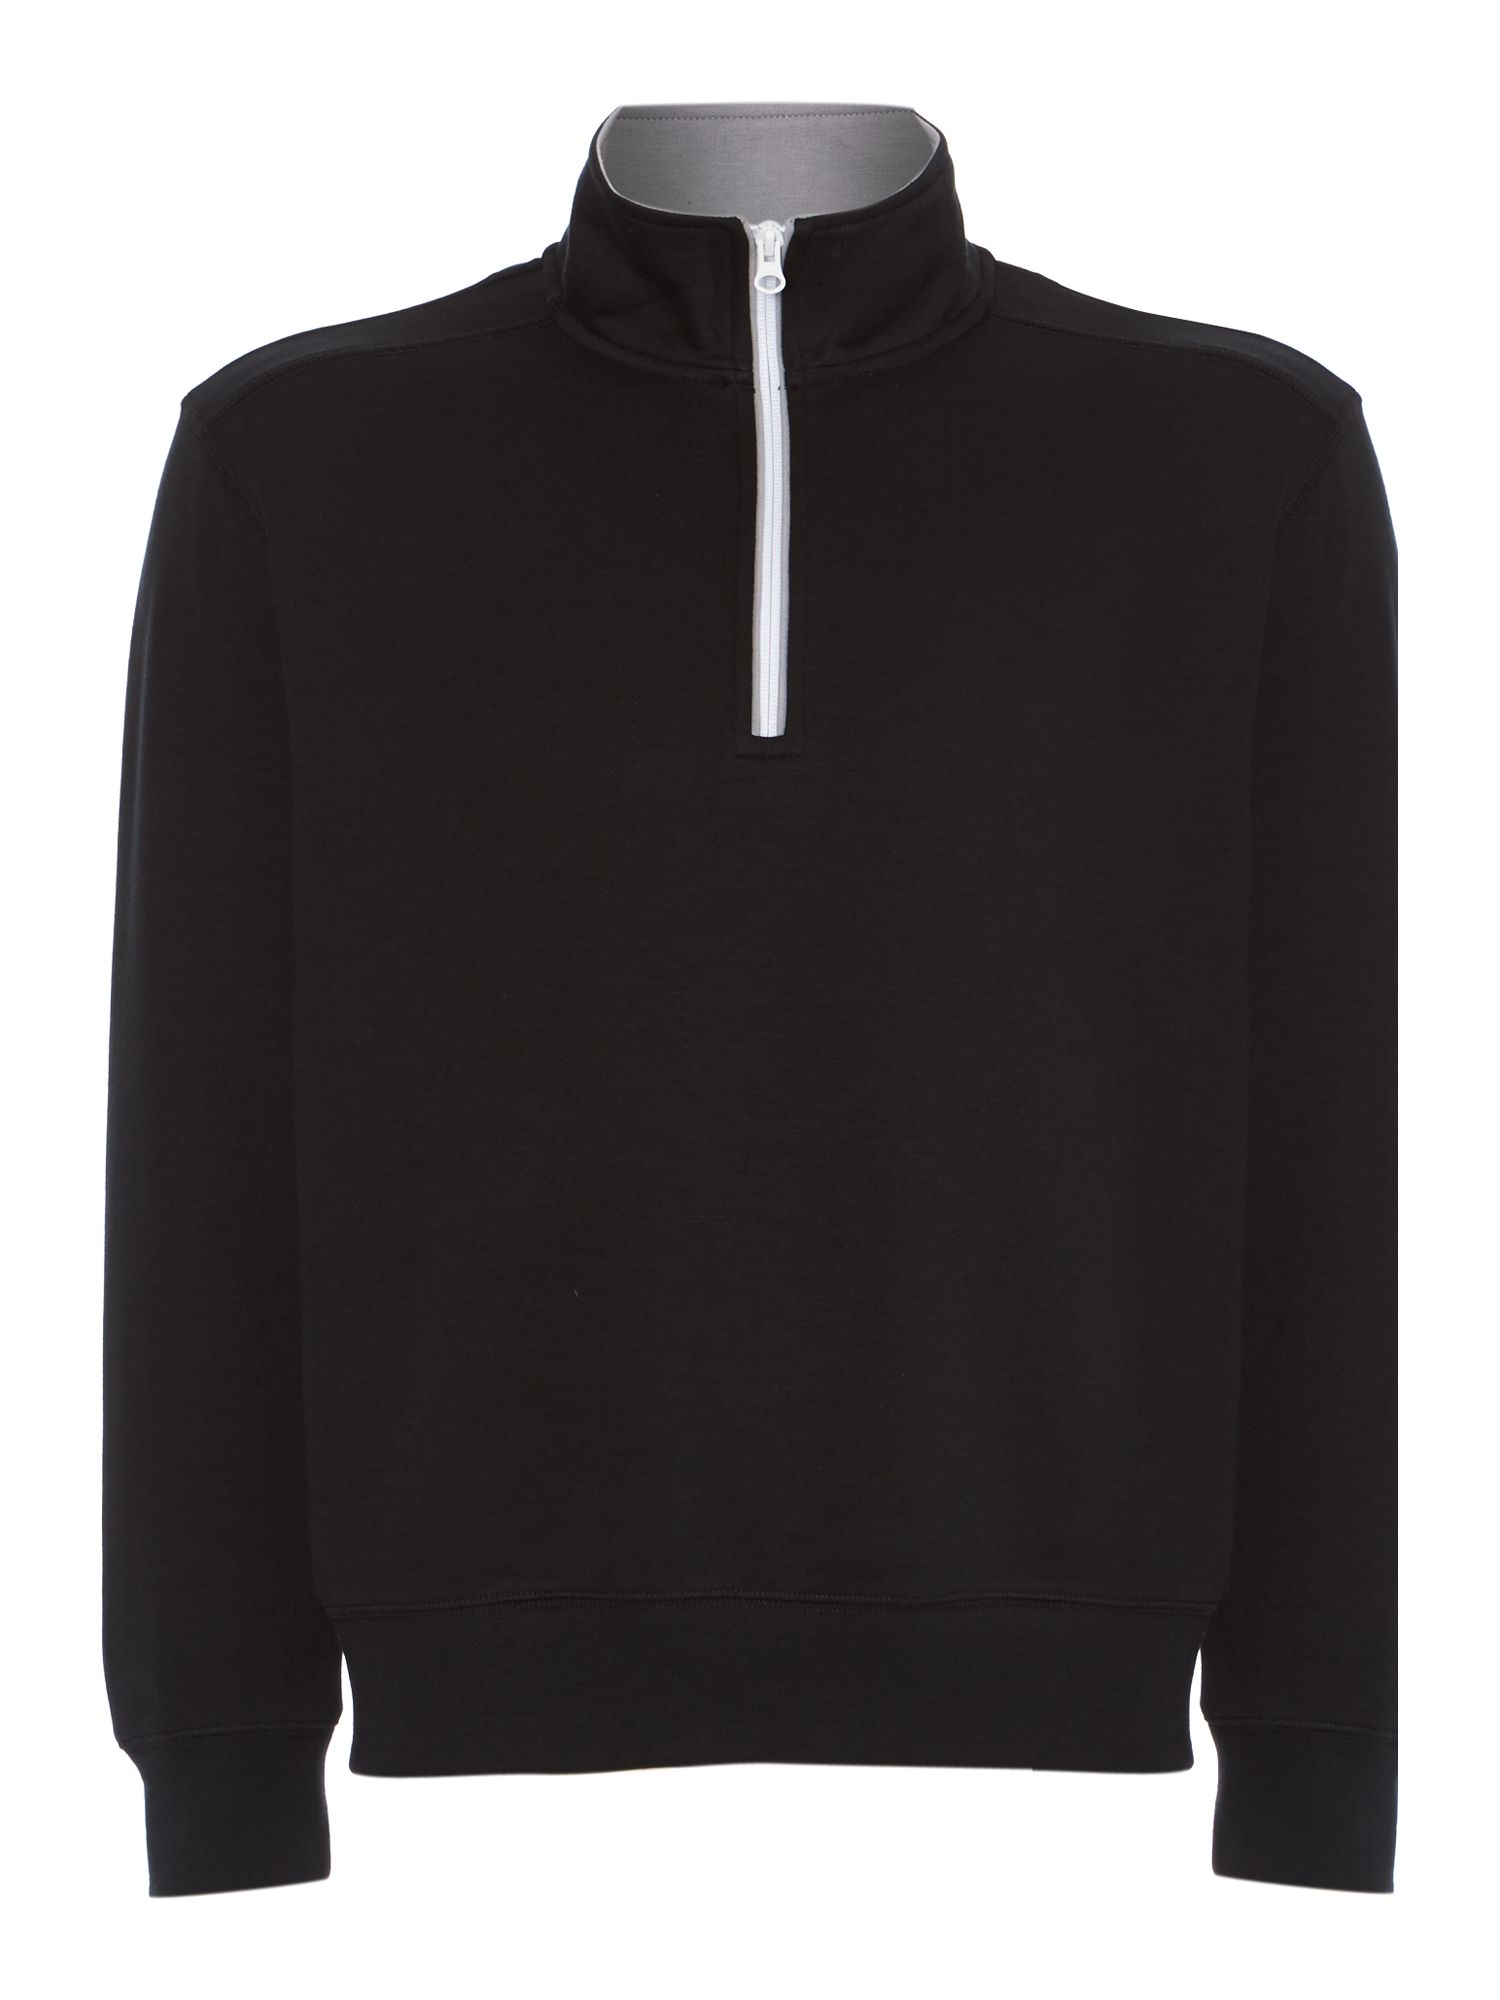 Bradley quater zip sweater